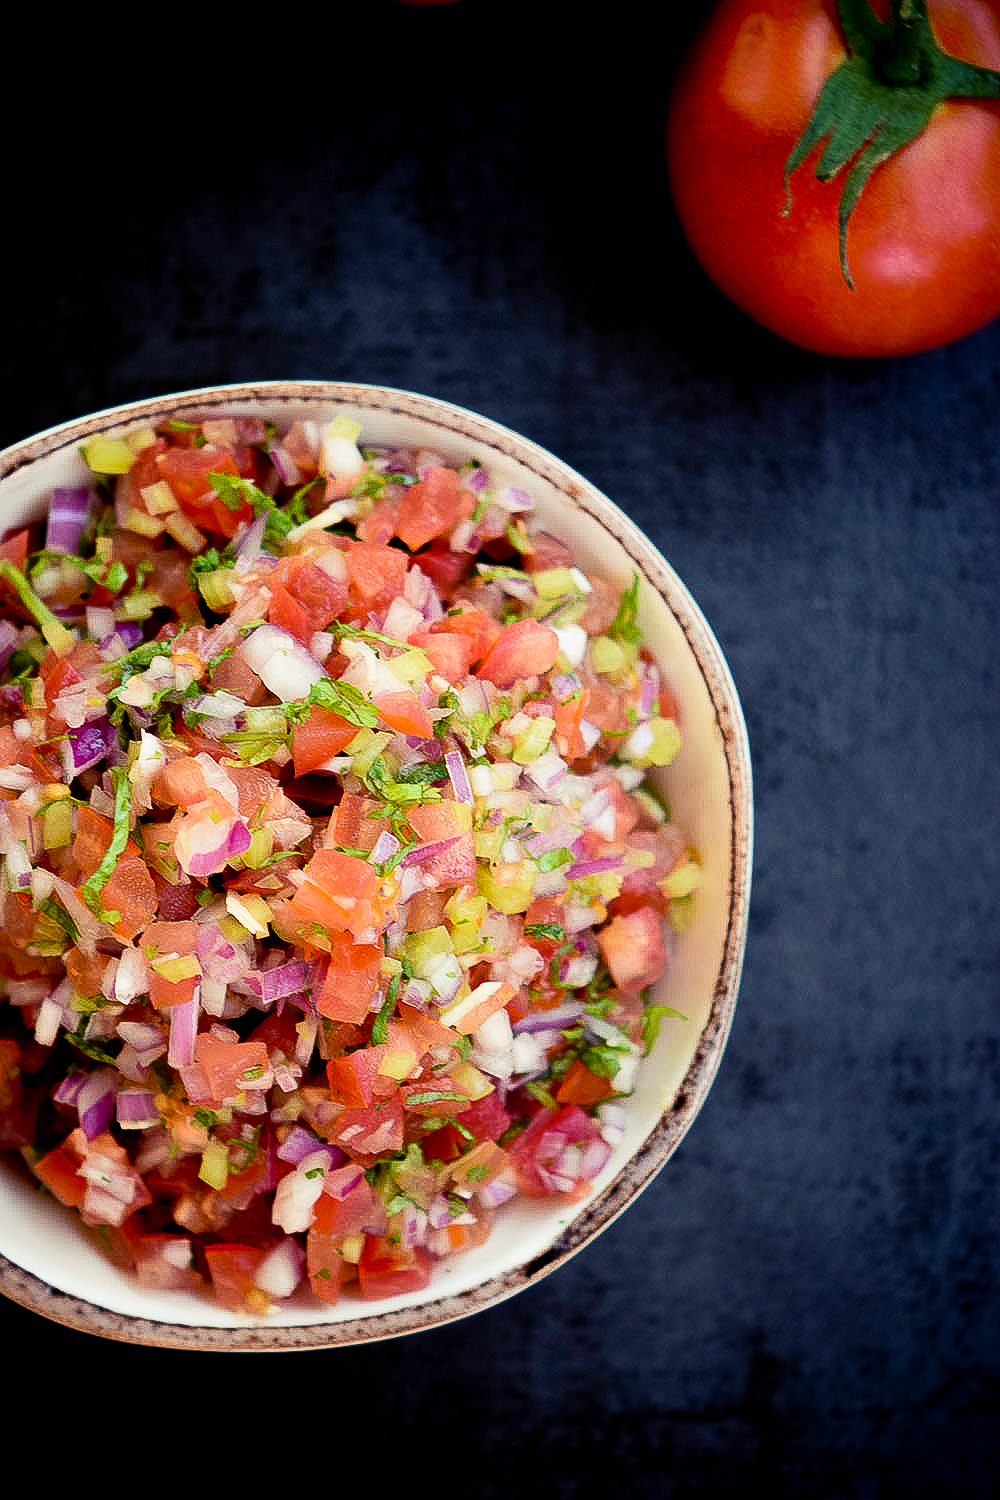 Many people mistake pico de gallo as salsa but while they may have the same ingredients they can be very different.